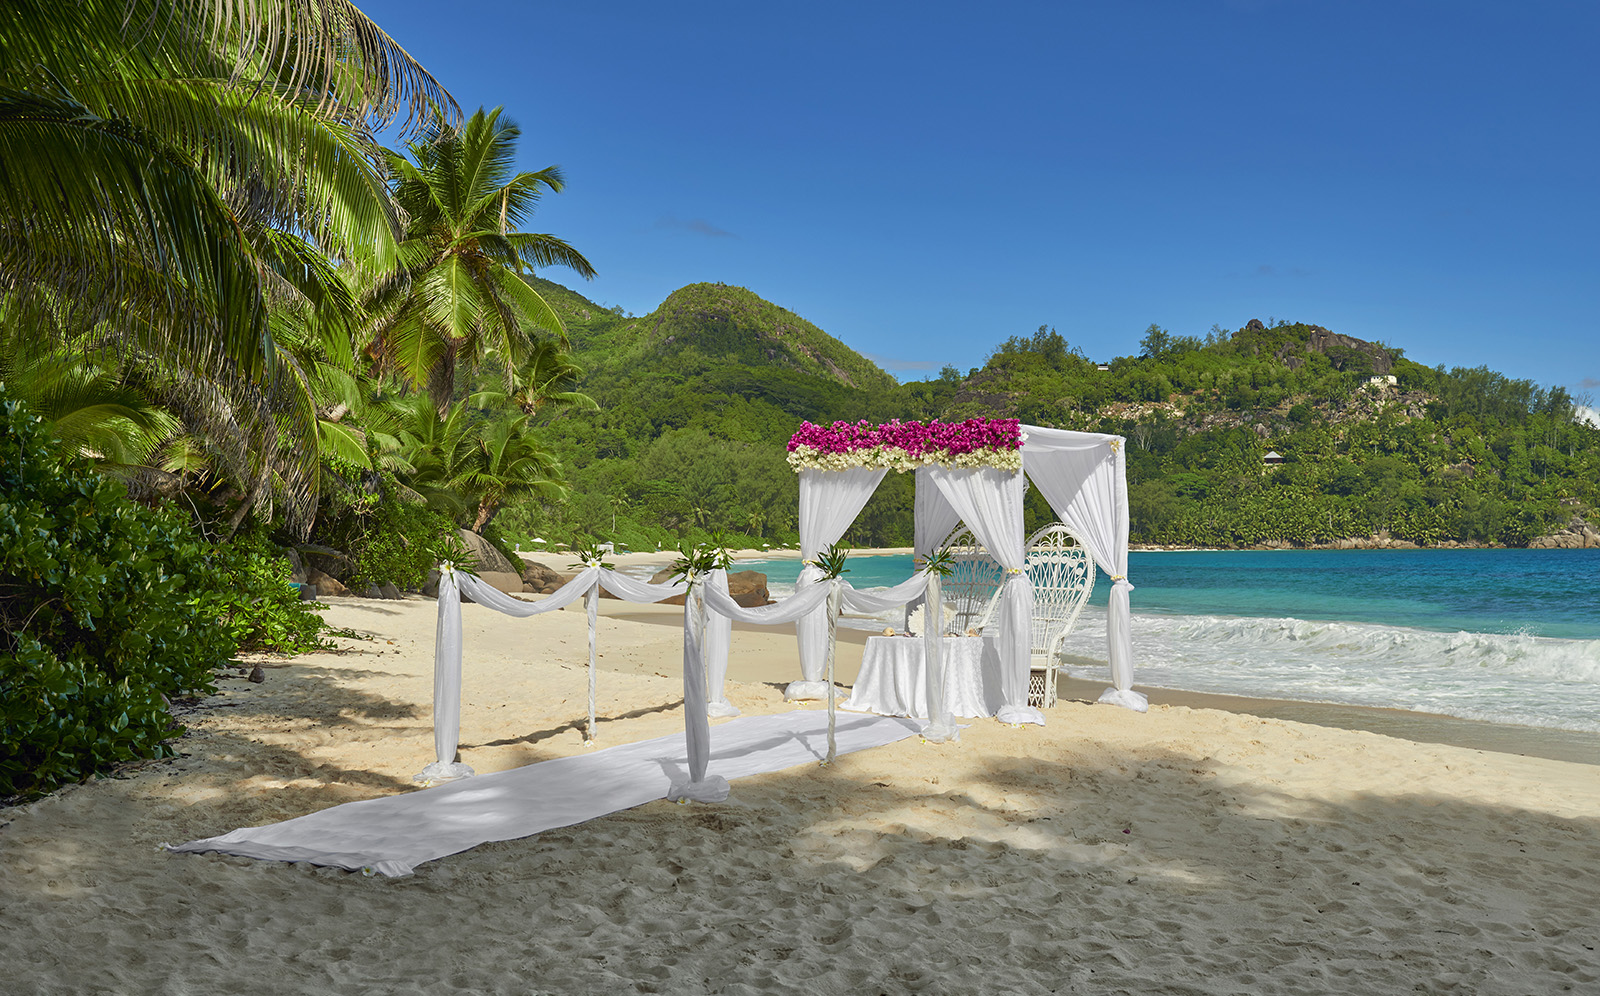 btscsc_ap_0415_beach-wedding_hr0015